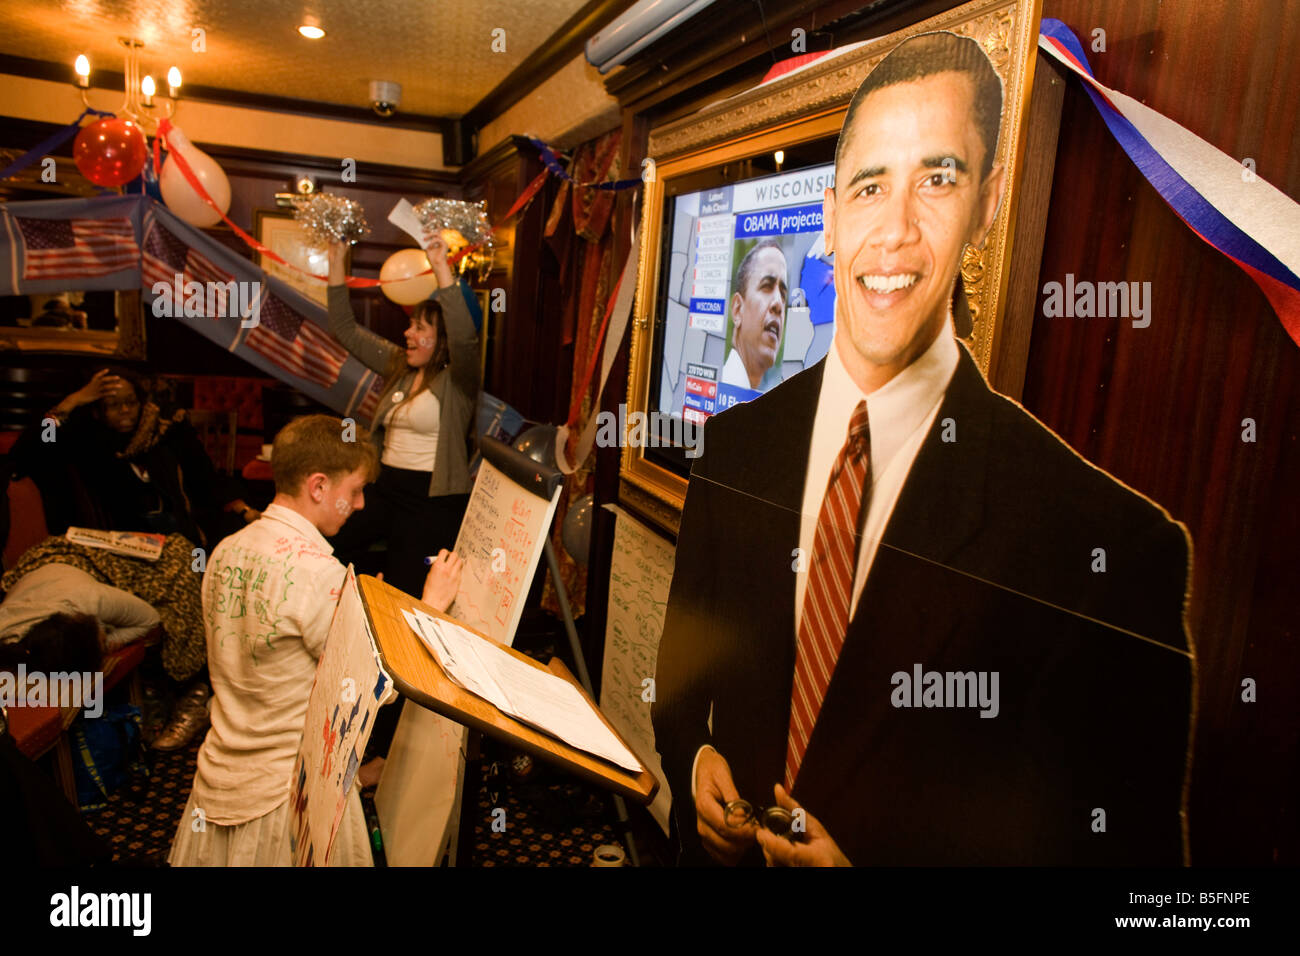 Democrat Party member keeps up with latest results with life-size cardboard cut-out of Barack Obama during 2008 - Stock Image